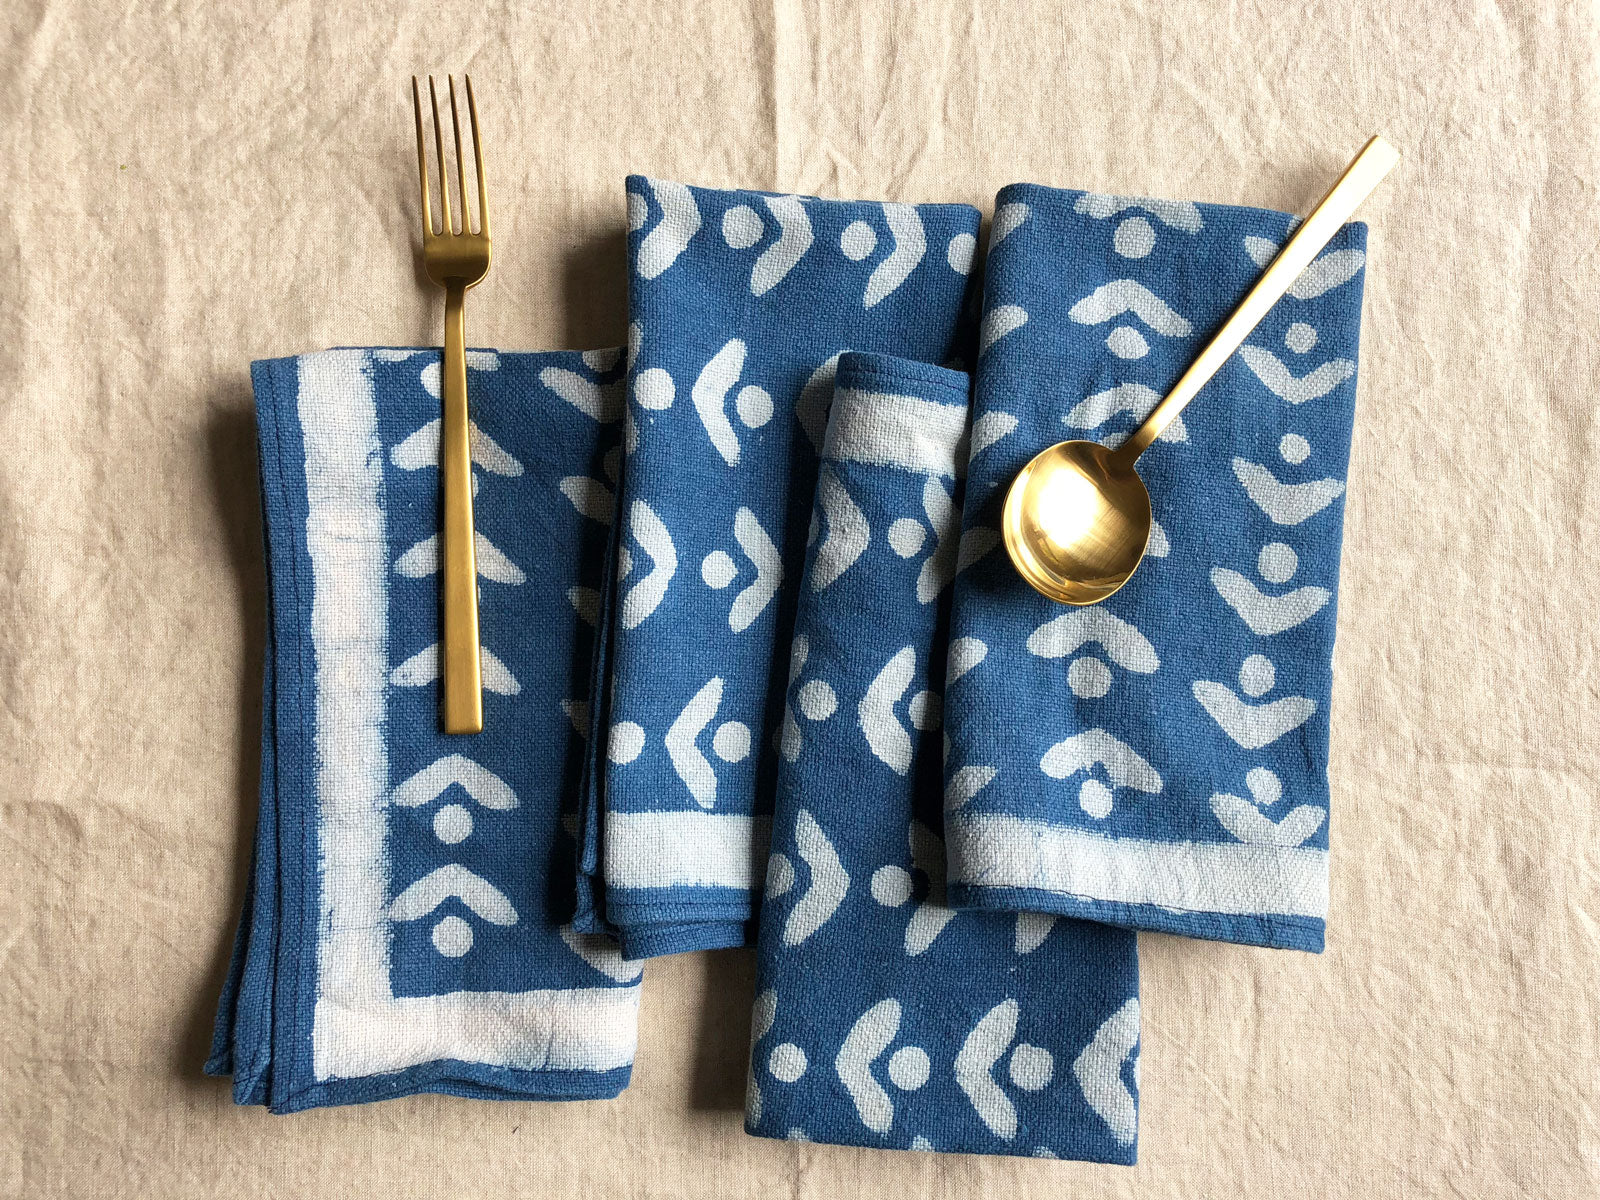 SUNDAY/MONDAY's hand block printed Egret cloth napkins are printed and hand dyed in natural indigo blue. Colorful blue and white cloth napkin set.